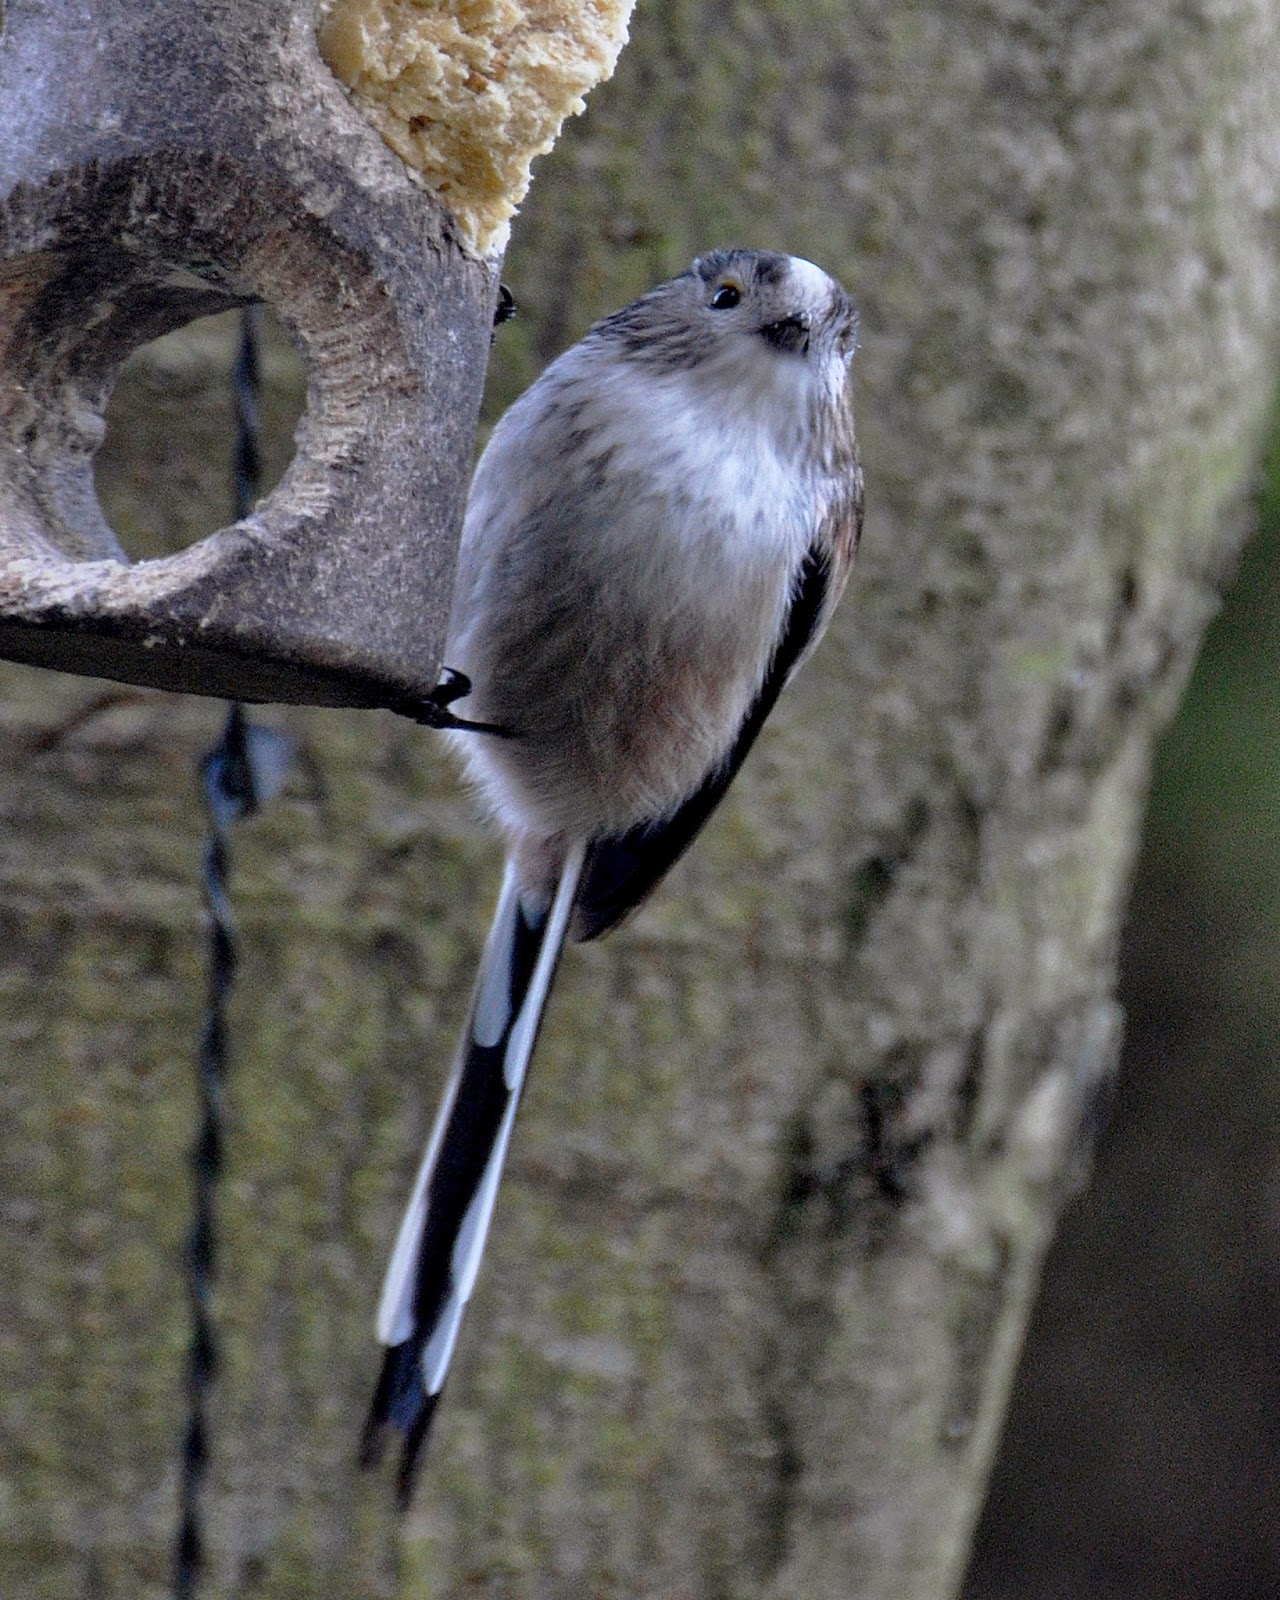 long-tailed tit on feeder